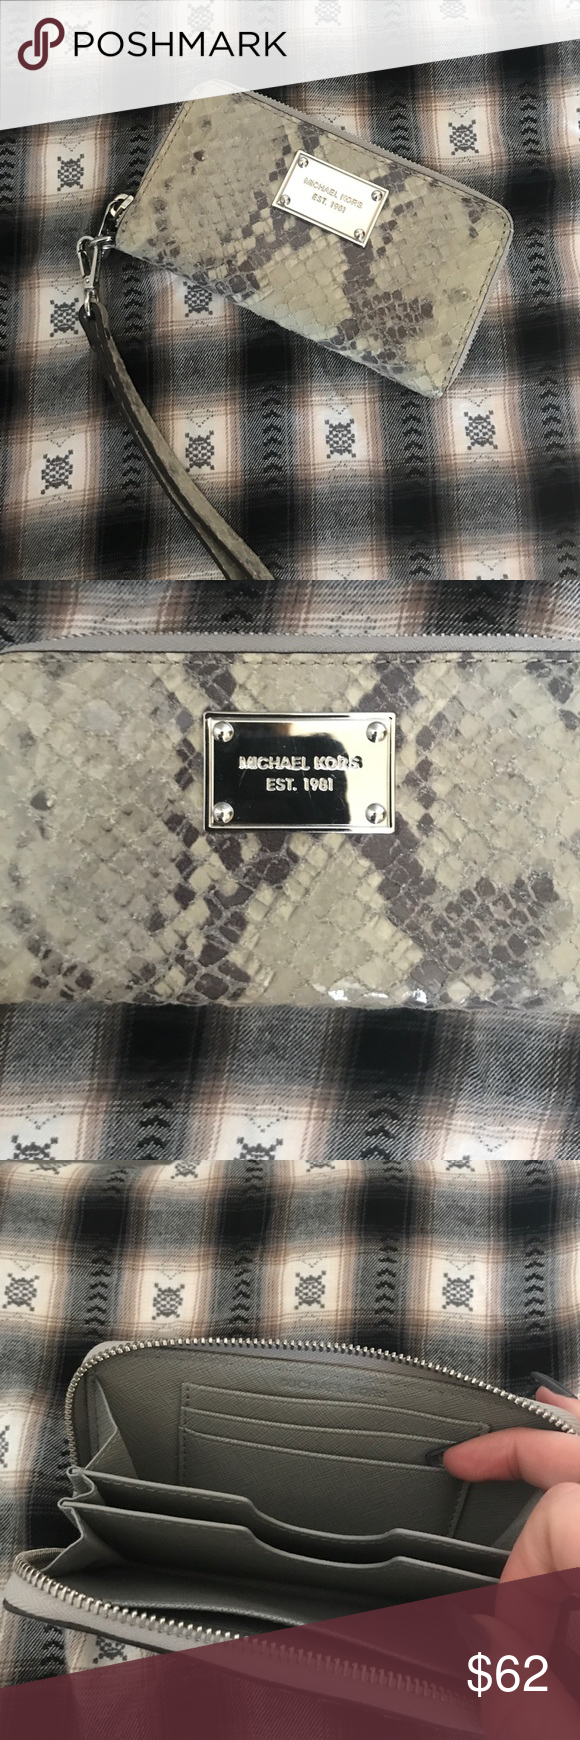 Like new authentic Michael Kors wristlet Like new authentic Michael Kors snake skin wristlet. Beautiful condition. Barely used. Very faint scratches on plate but very normal and not noticeable. Pairs well with black skinny jeans. Make your outfit complete with this wristlet 😍 Michael Kors Bags Clutches & Wristlets